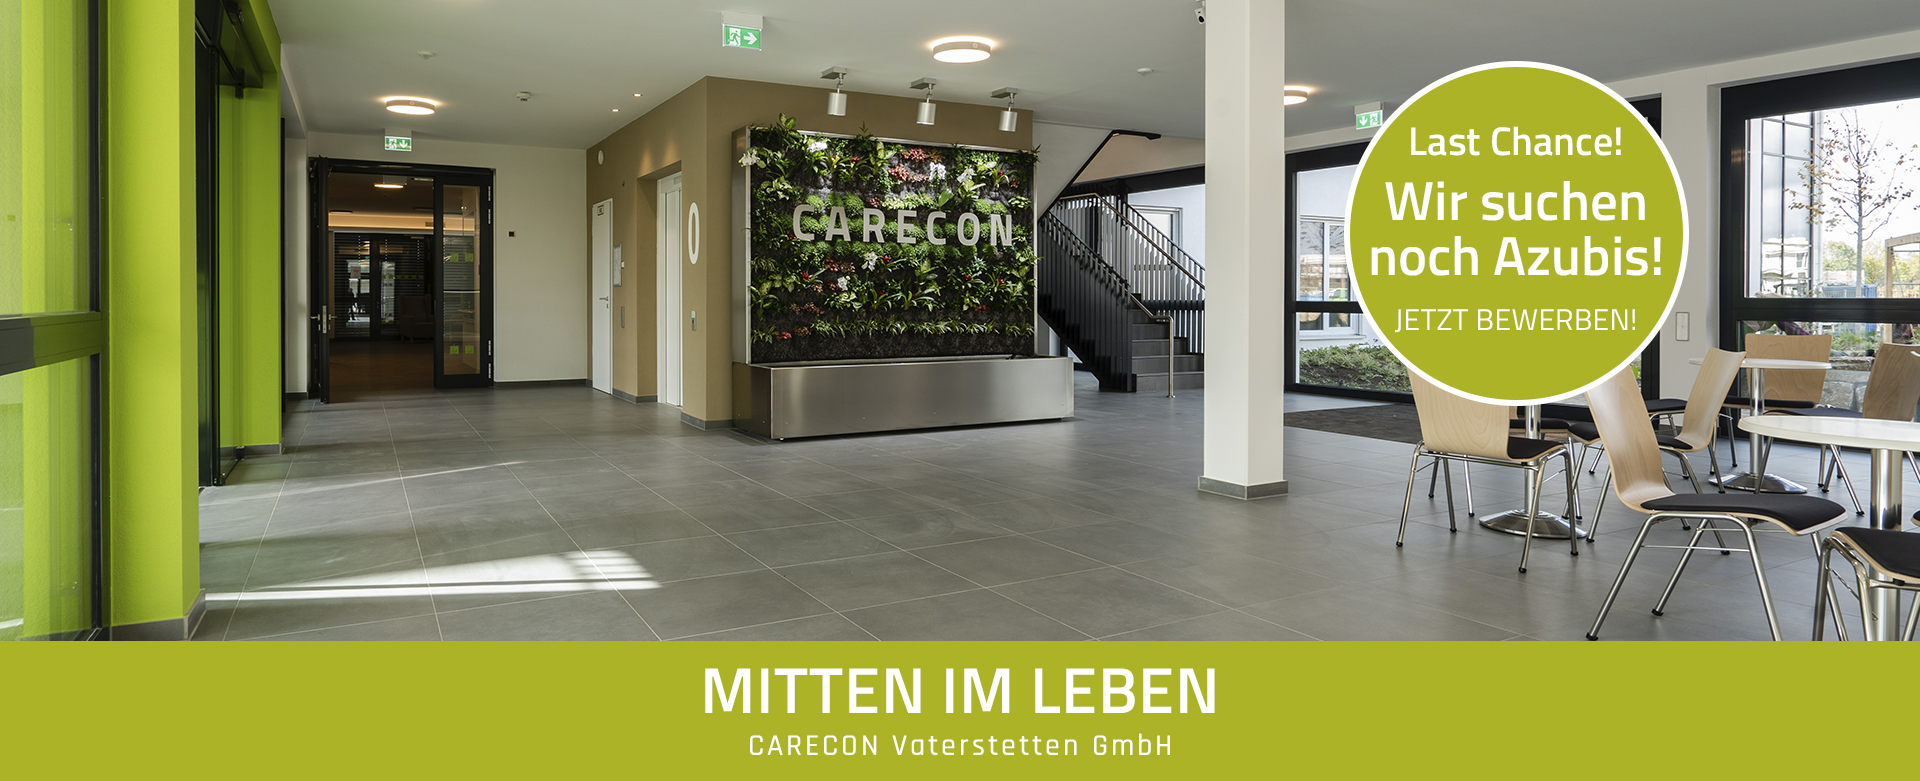 Neubau GreenWall Home + Azubi 2